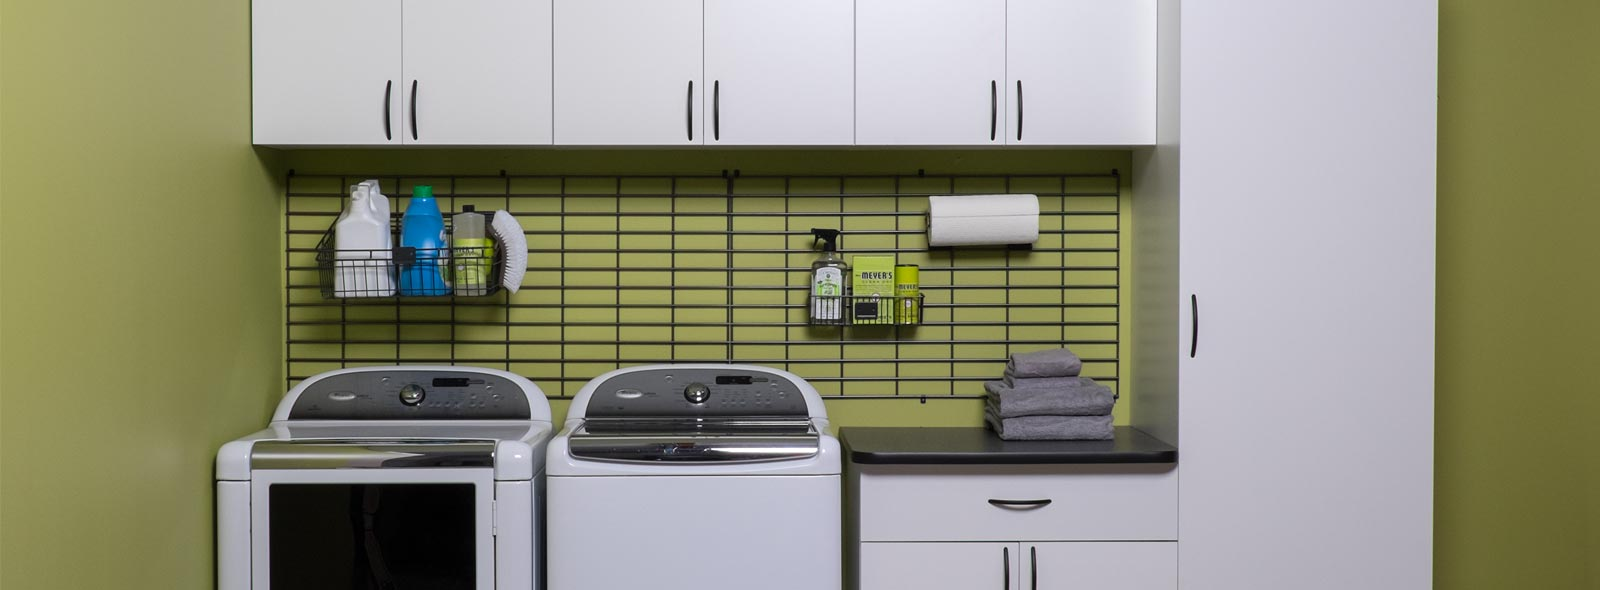 laundry room organizers shelves cabinets laundry room cabine